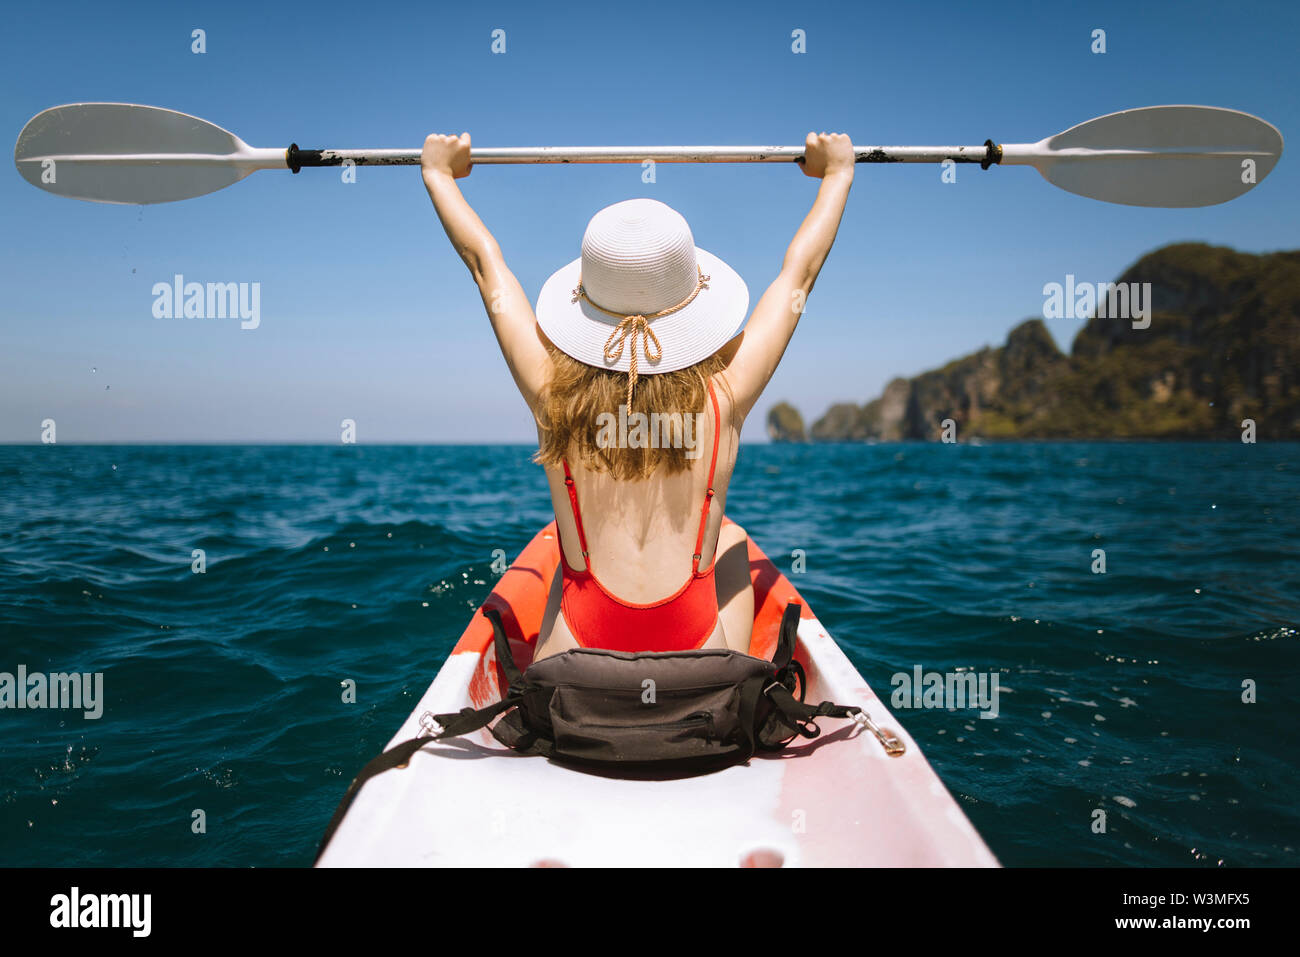 Young woman in kayak on sea in Krabi, Thailand - Stock Image